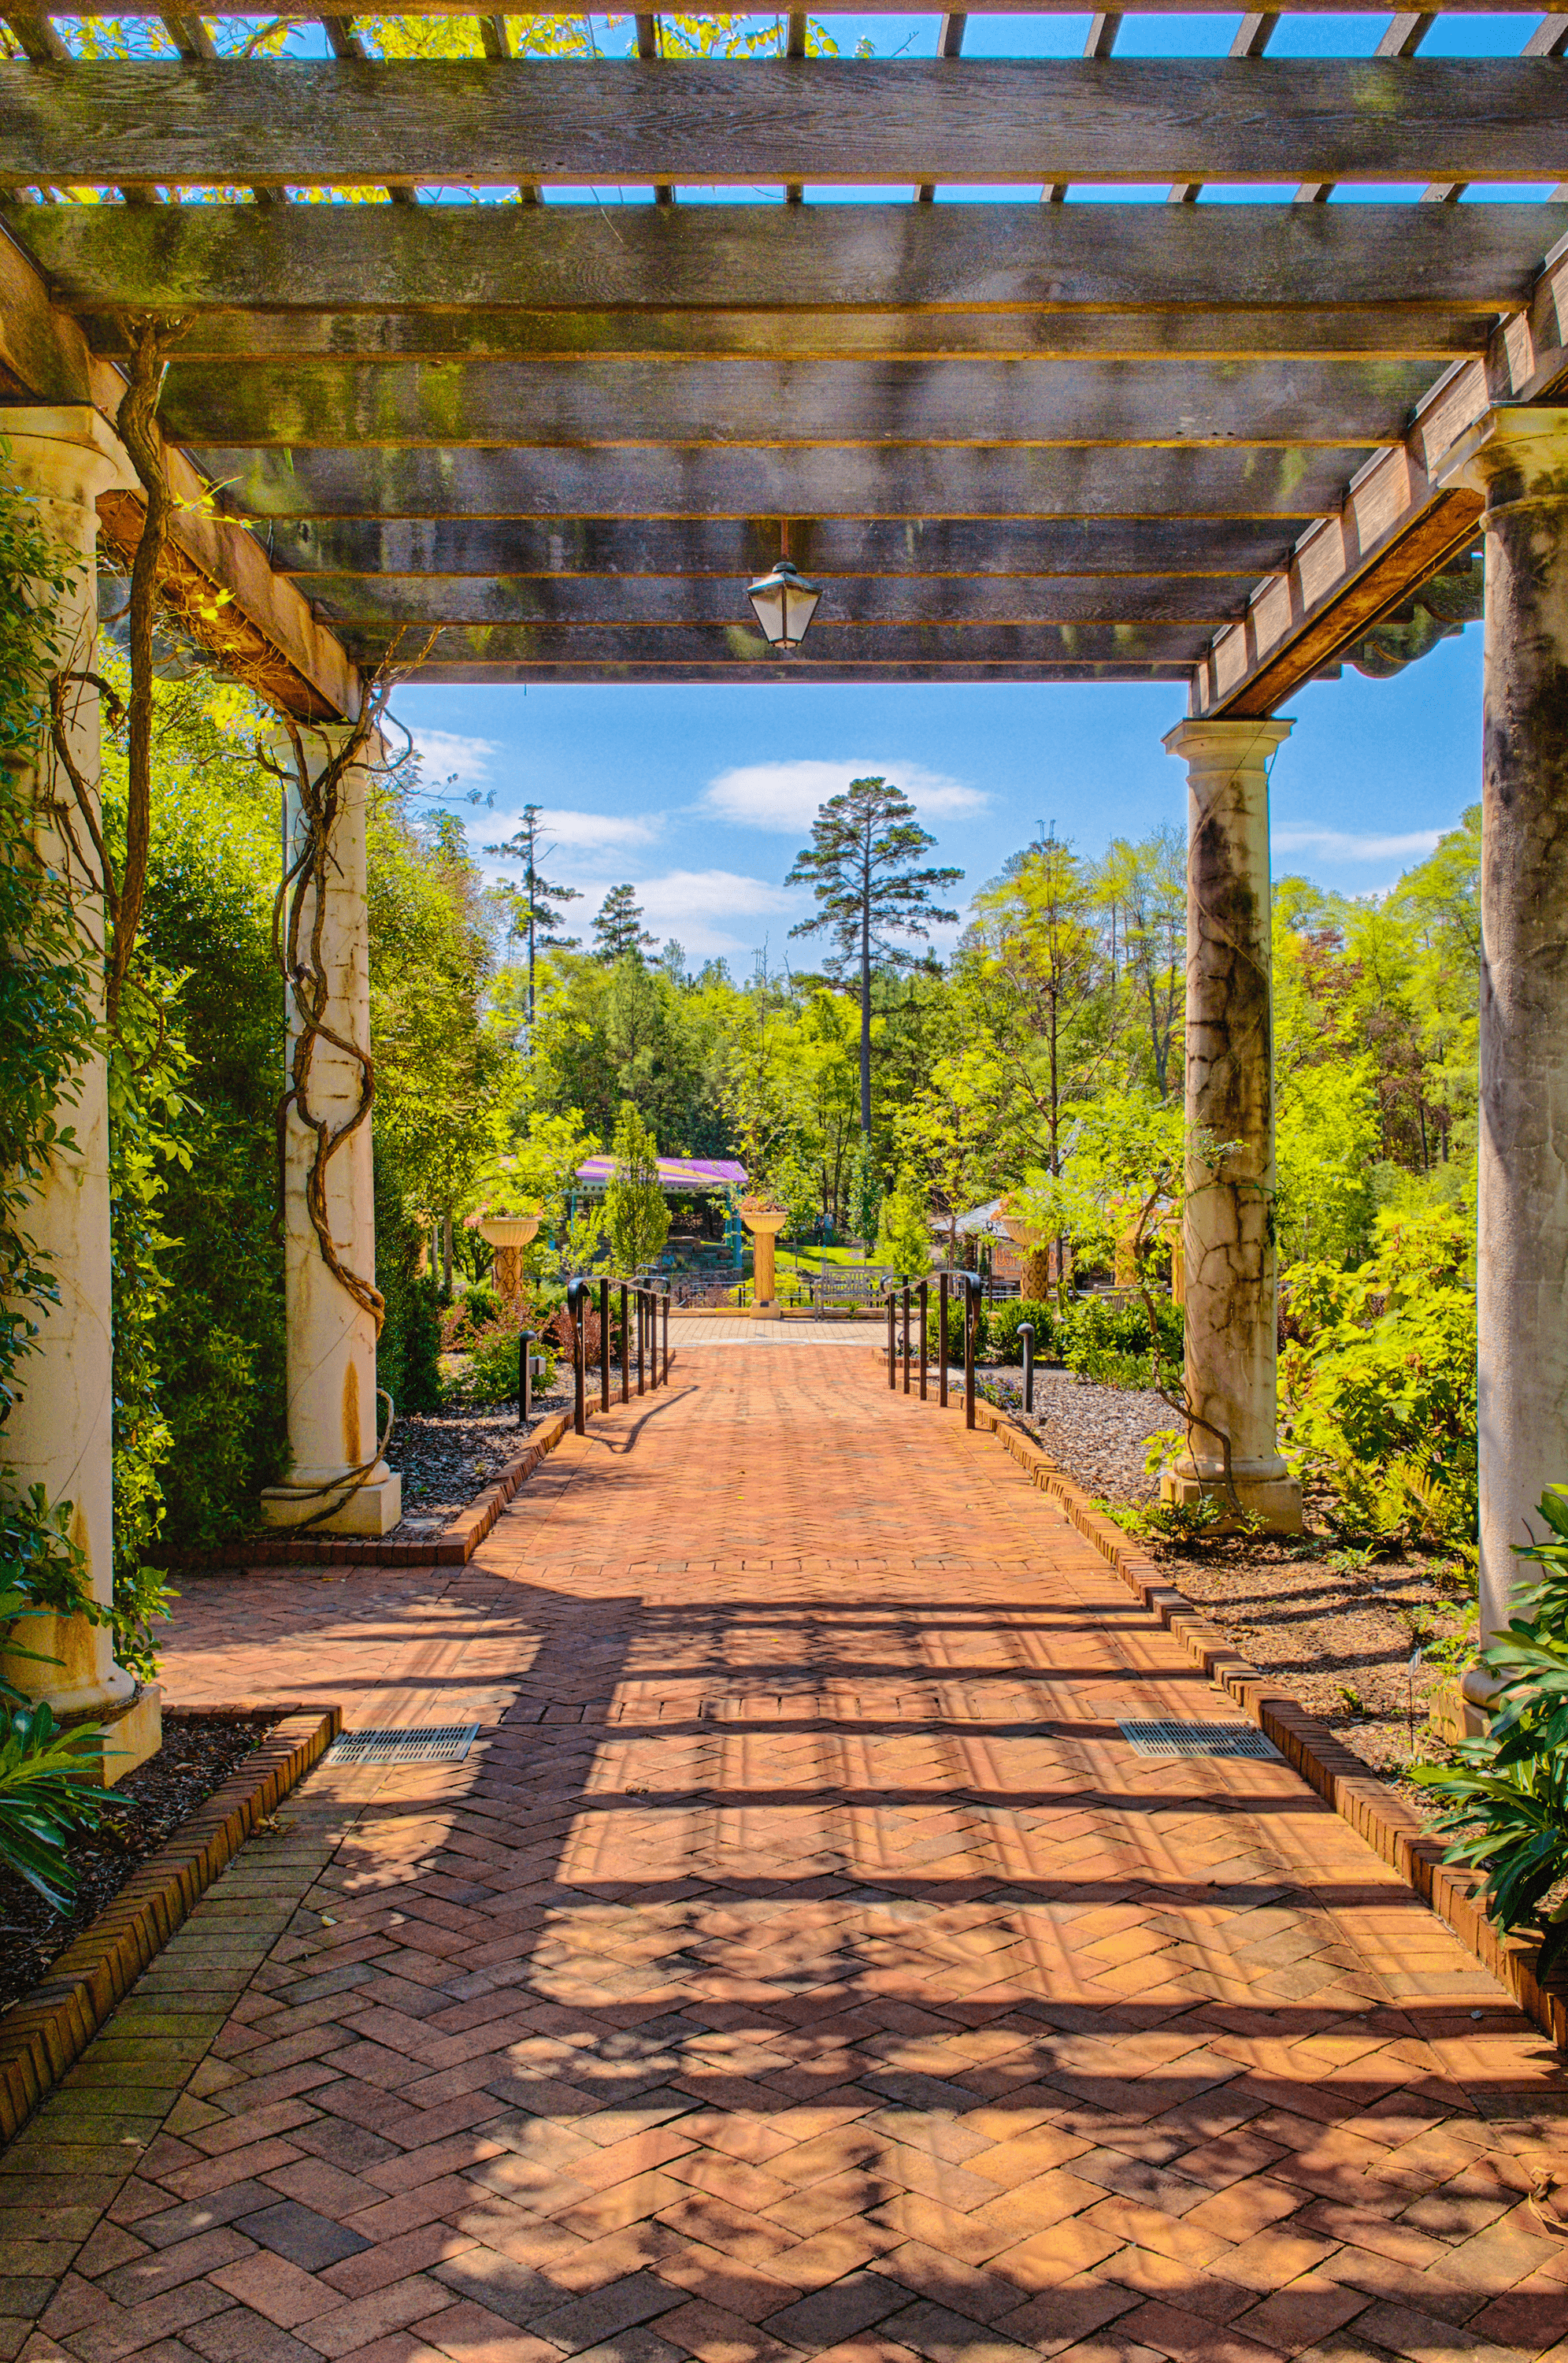 The  East  and  West Pergolas  allow for some shade in the summer and of course more amazing views.